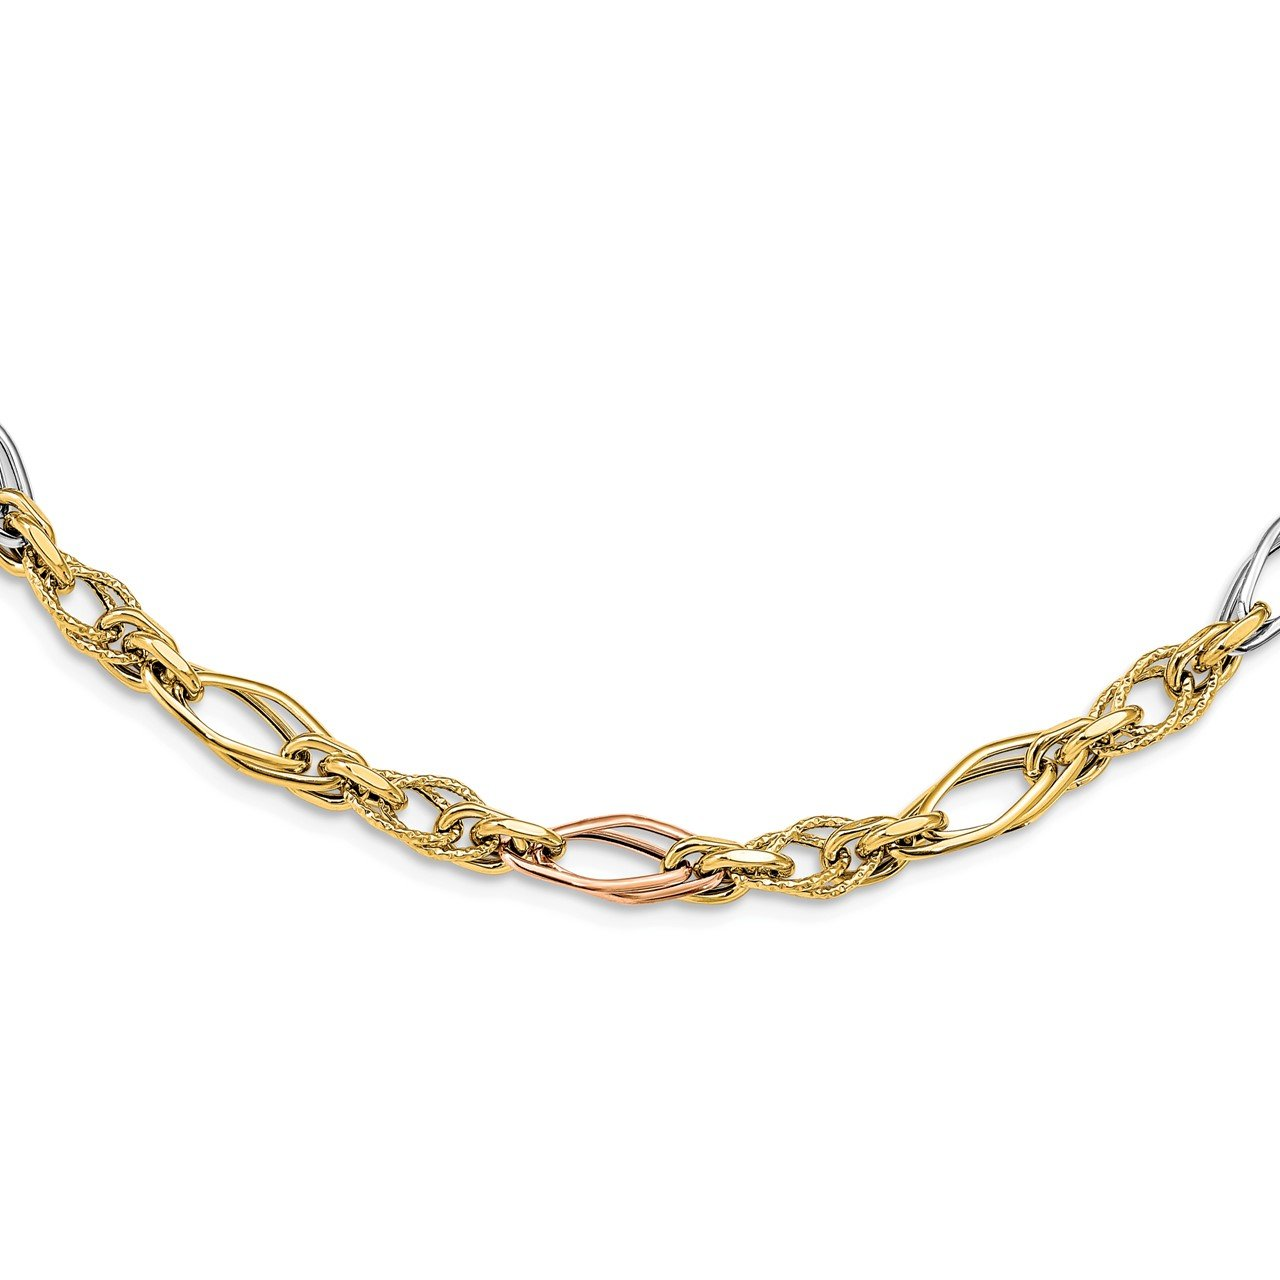 Leslie's 14k White and Rose-plated Polished and Textured Link Necklace